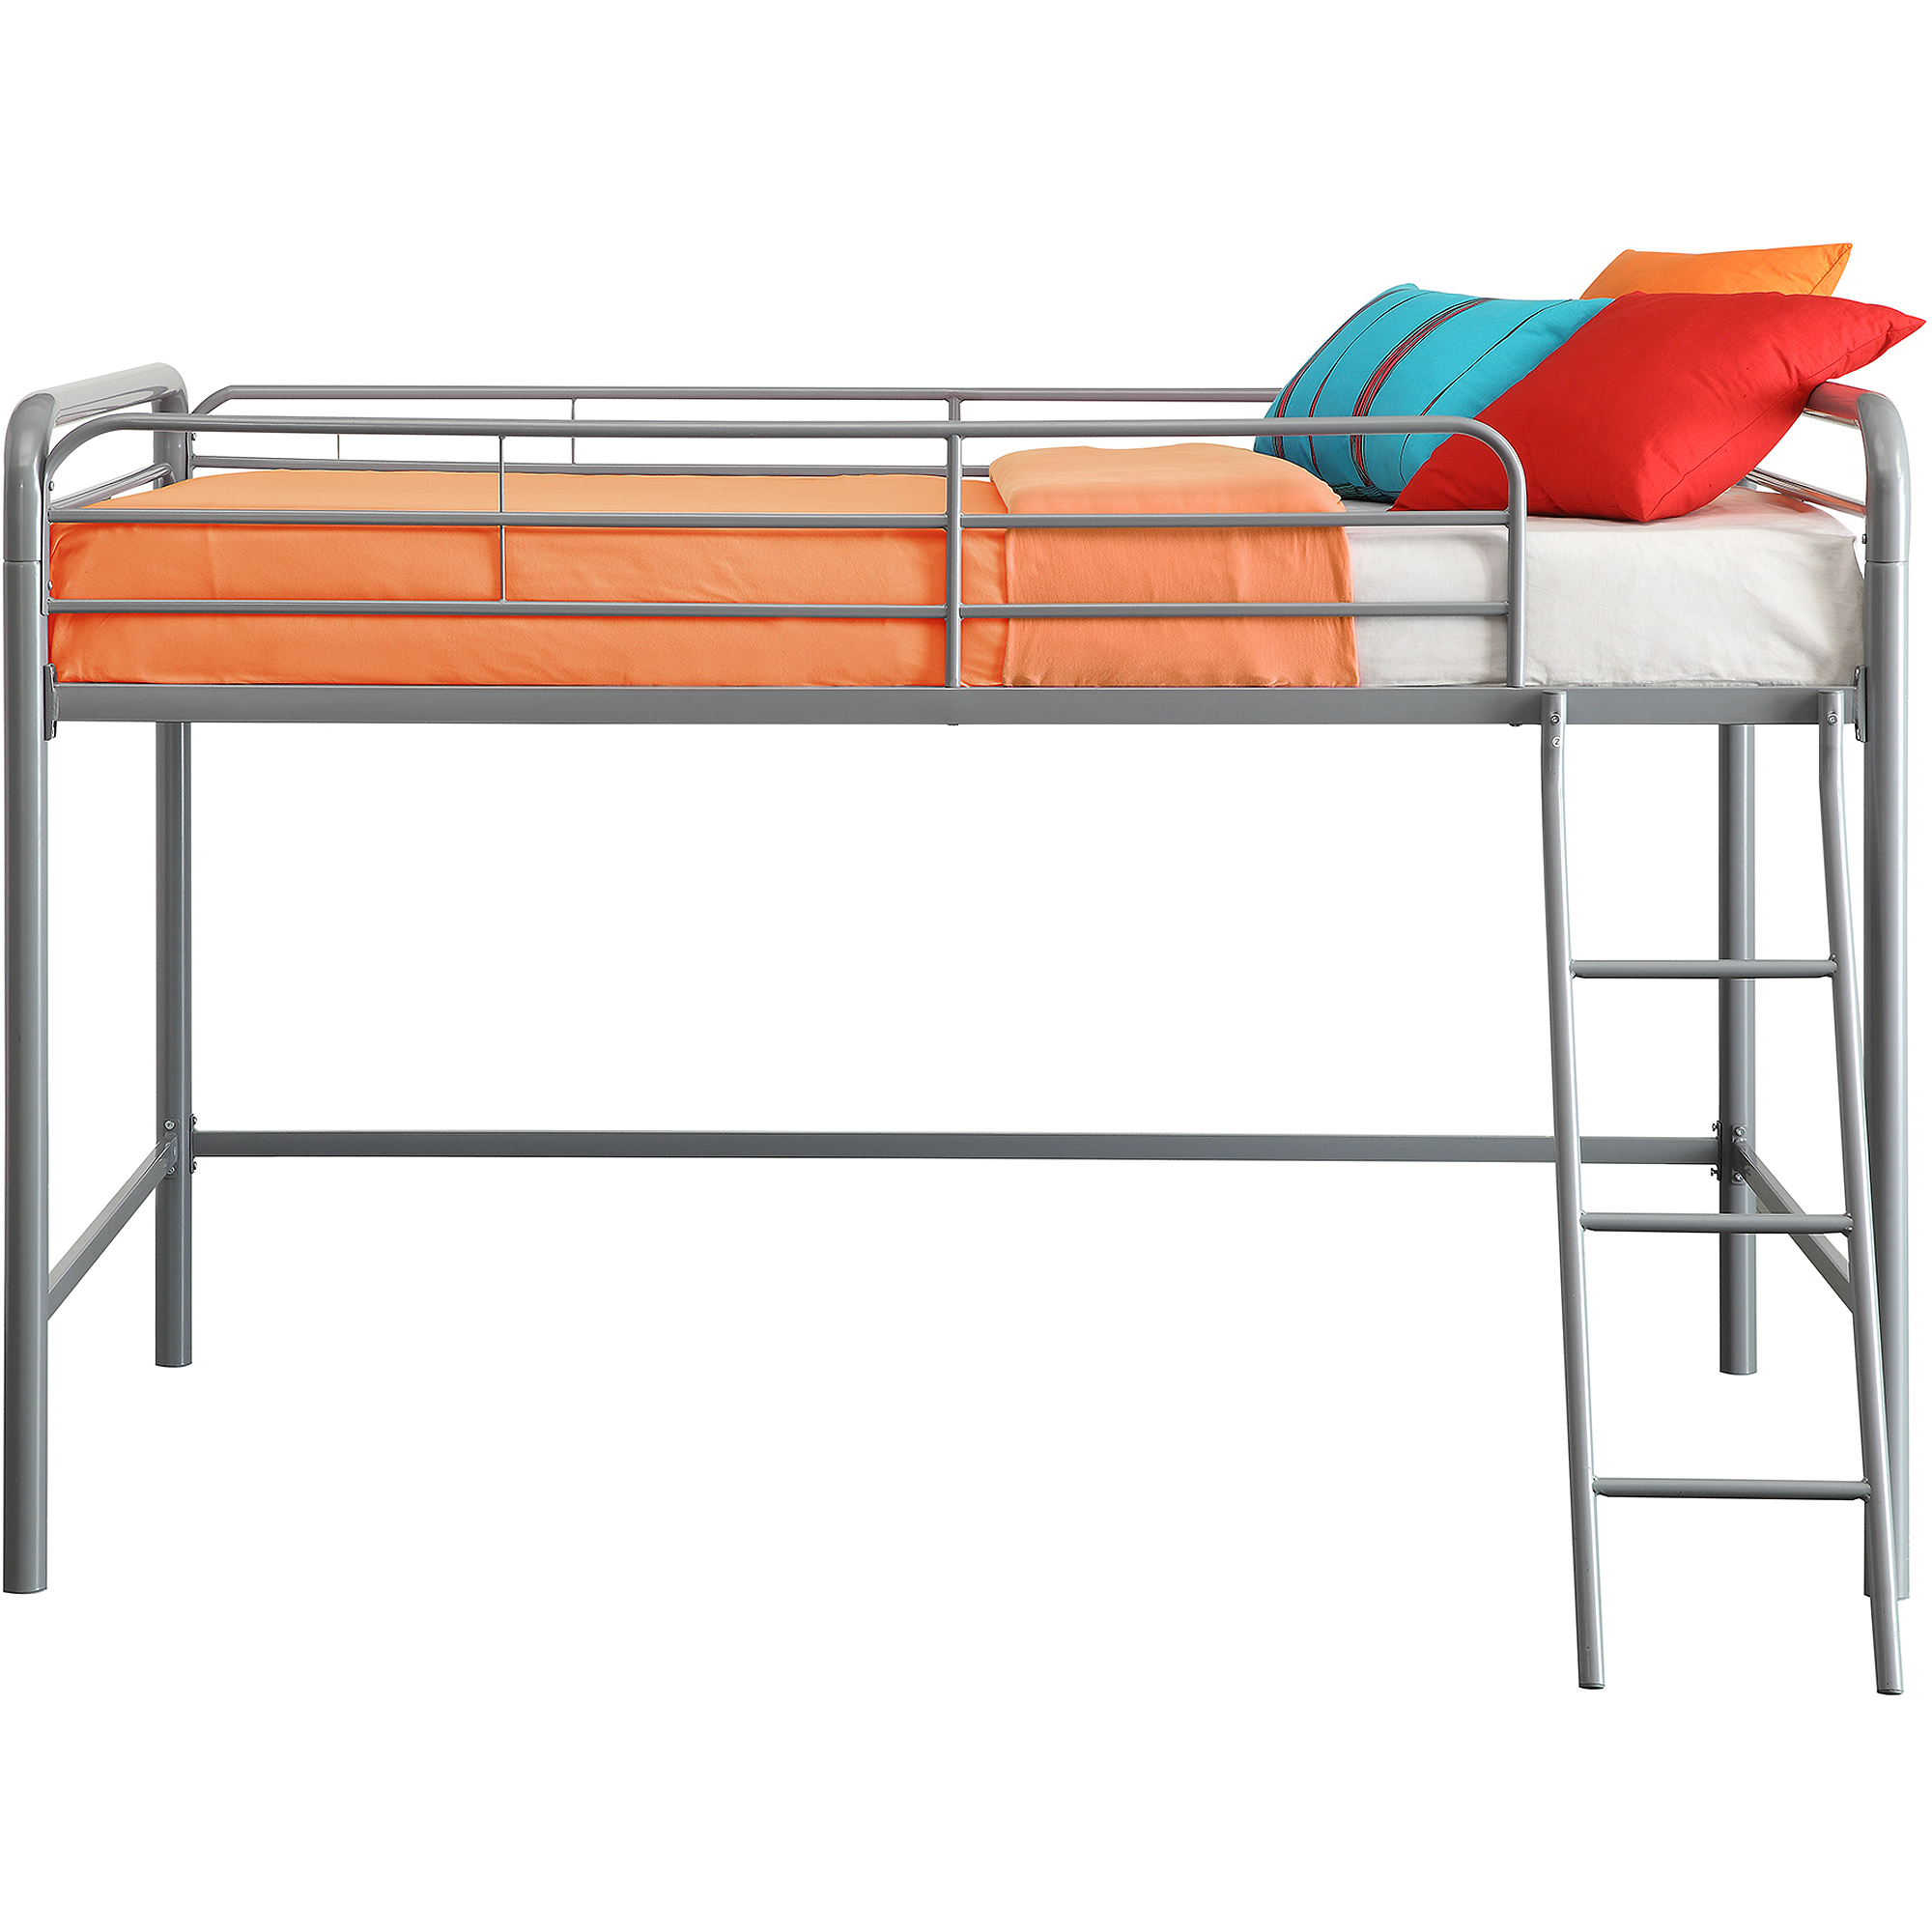 Twin Over Bunk Beds Junior Kids Boys Girls Bedroom Furniture Metal